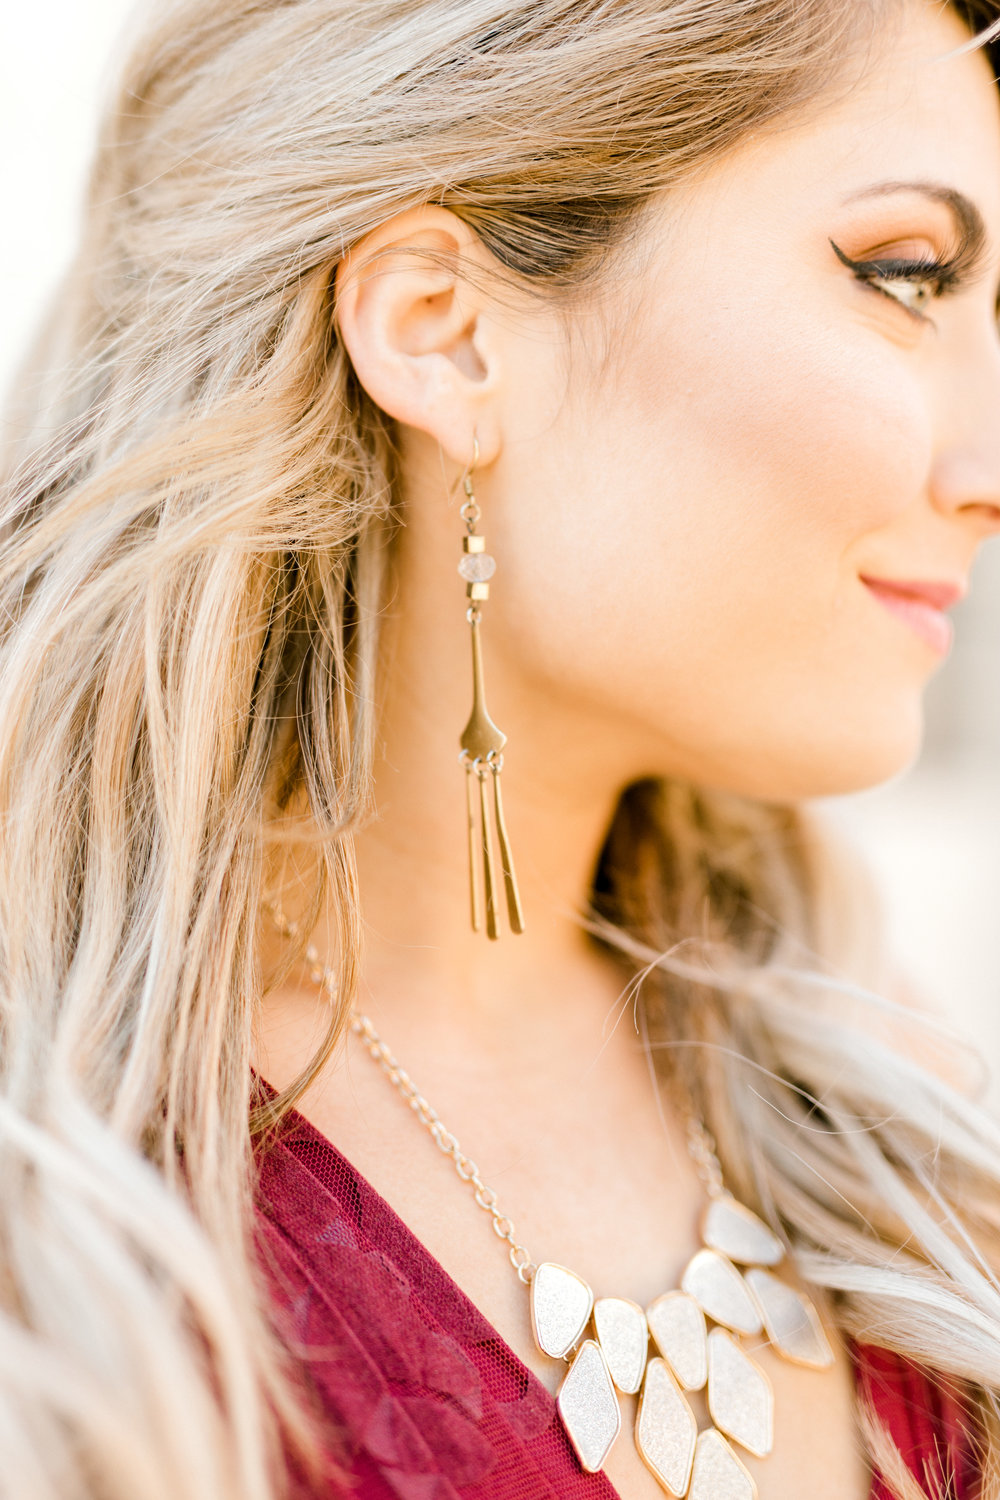 Nikki accessorized so well for her bright and romantic fall engagement session in Old City, Philadelphia. These dangling gold earrings are everything!